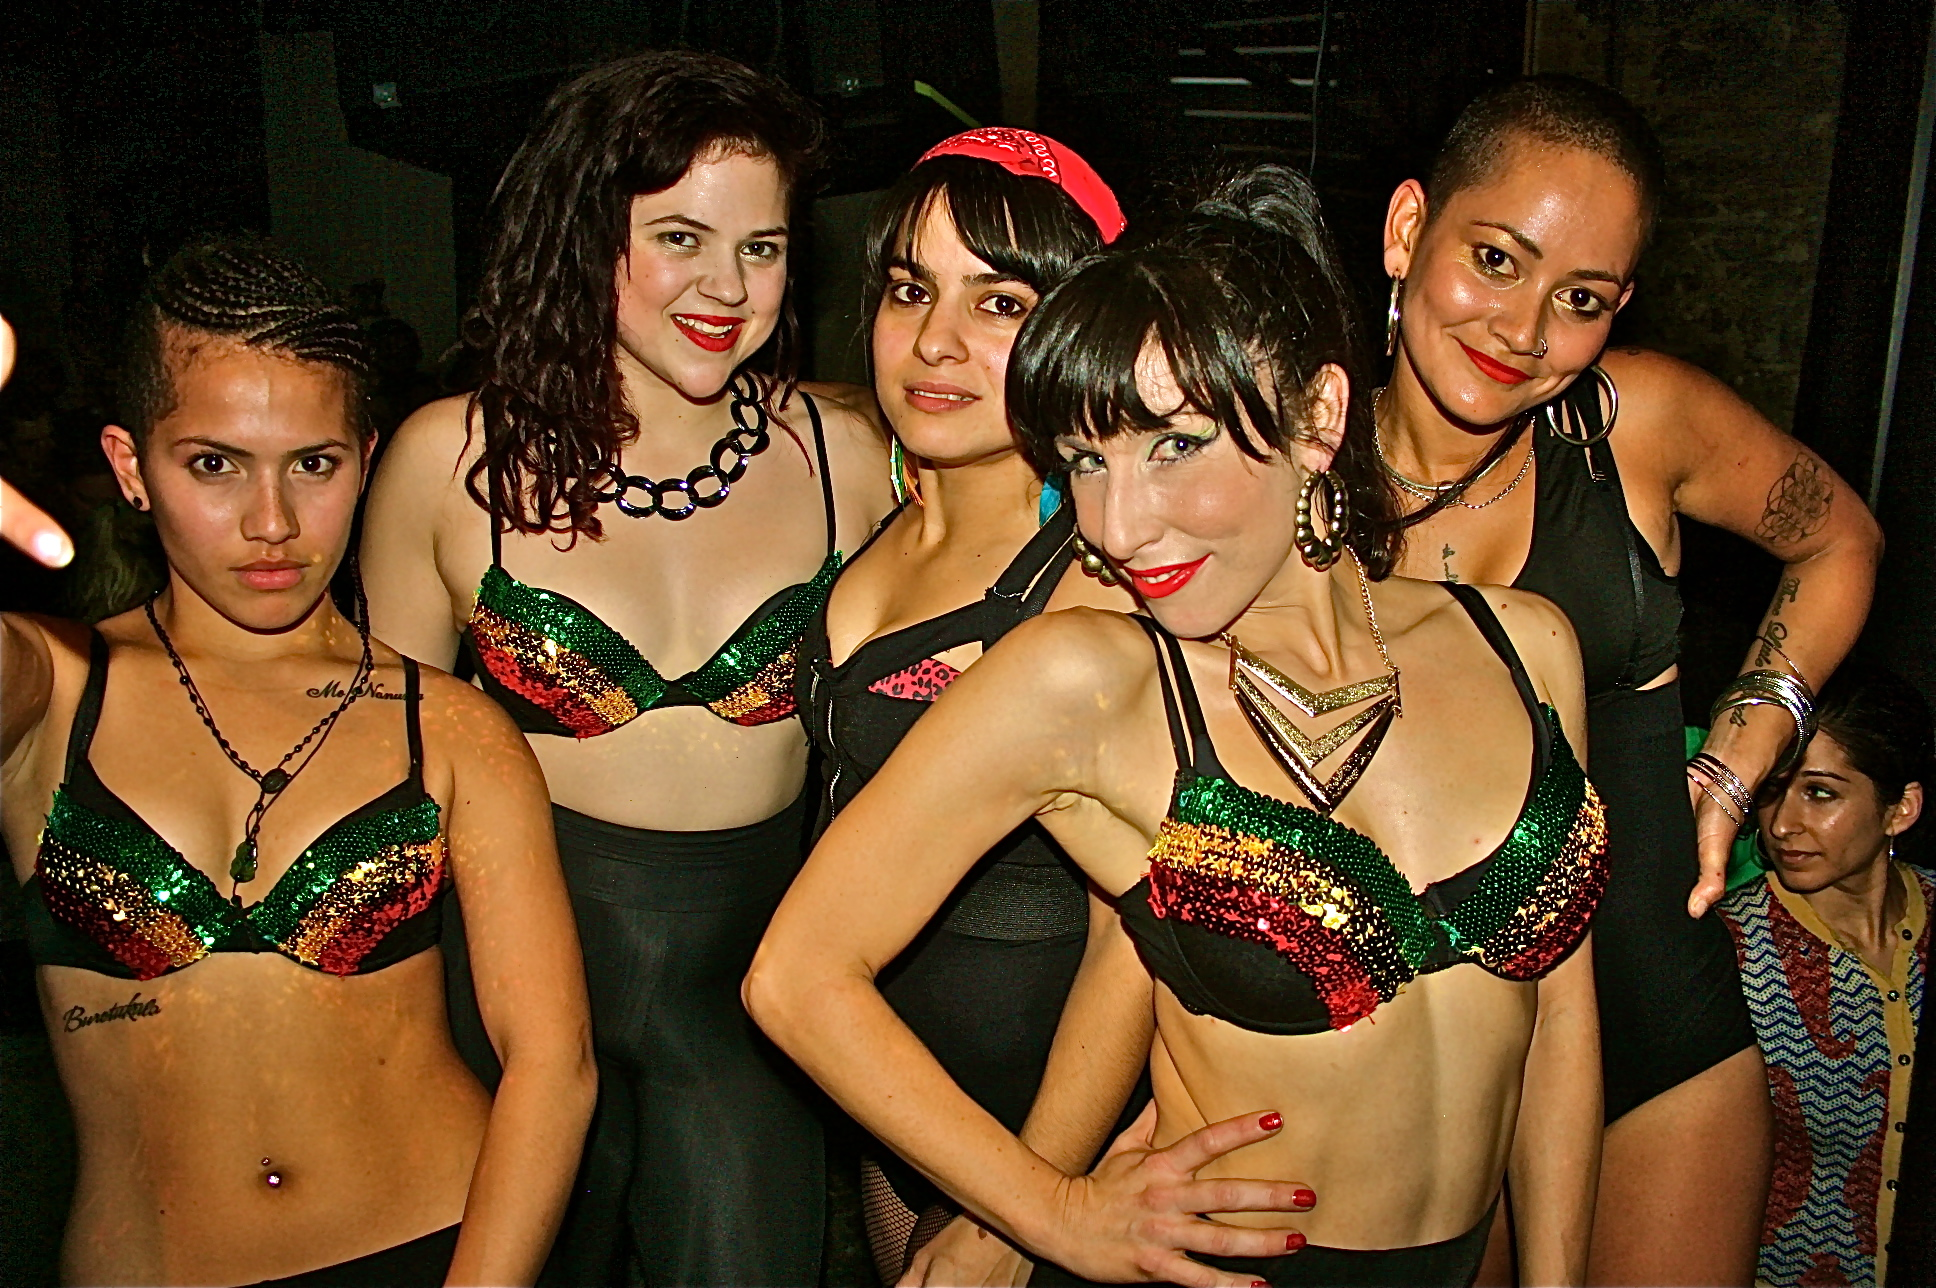 Members of Burncity Queenz with leader KittyCat (right). Photo credit: Quashani Bahd